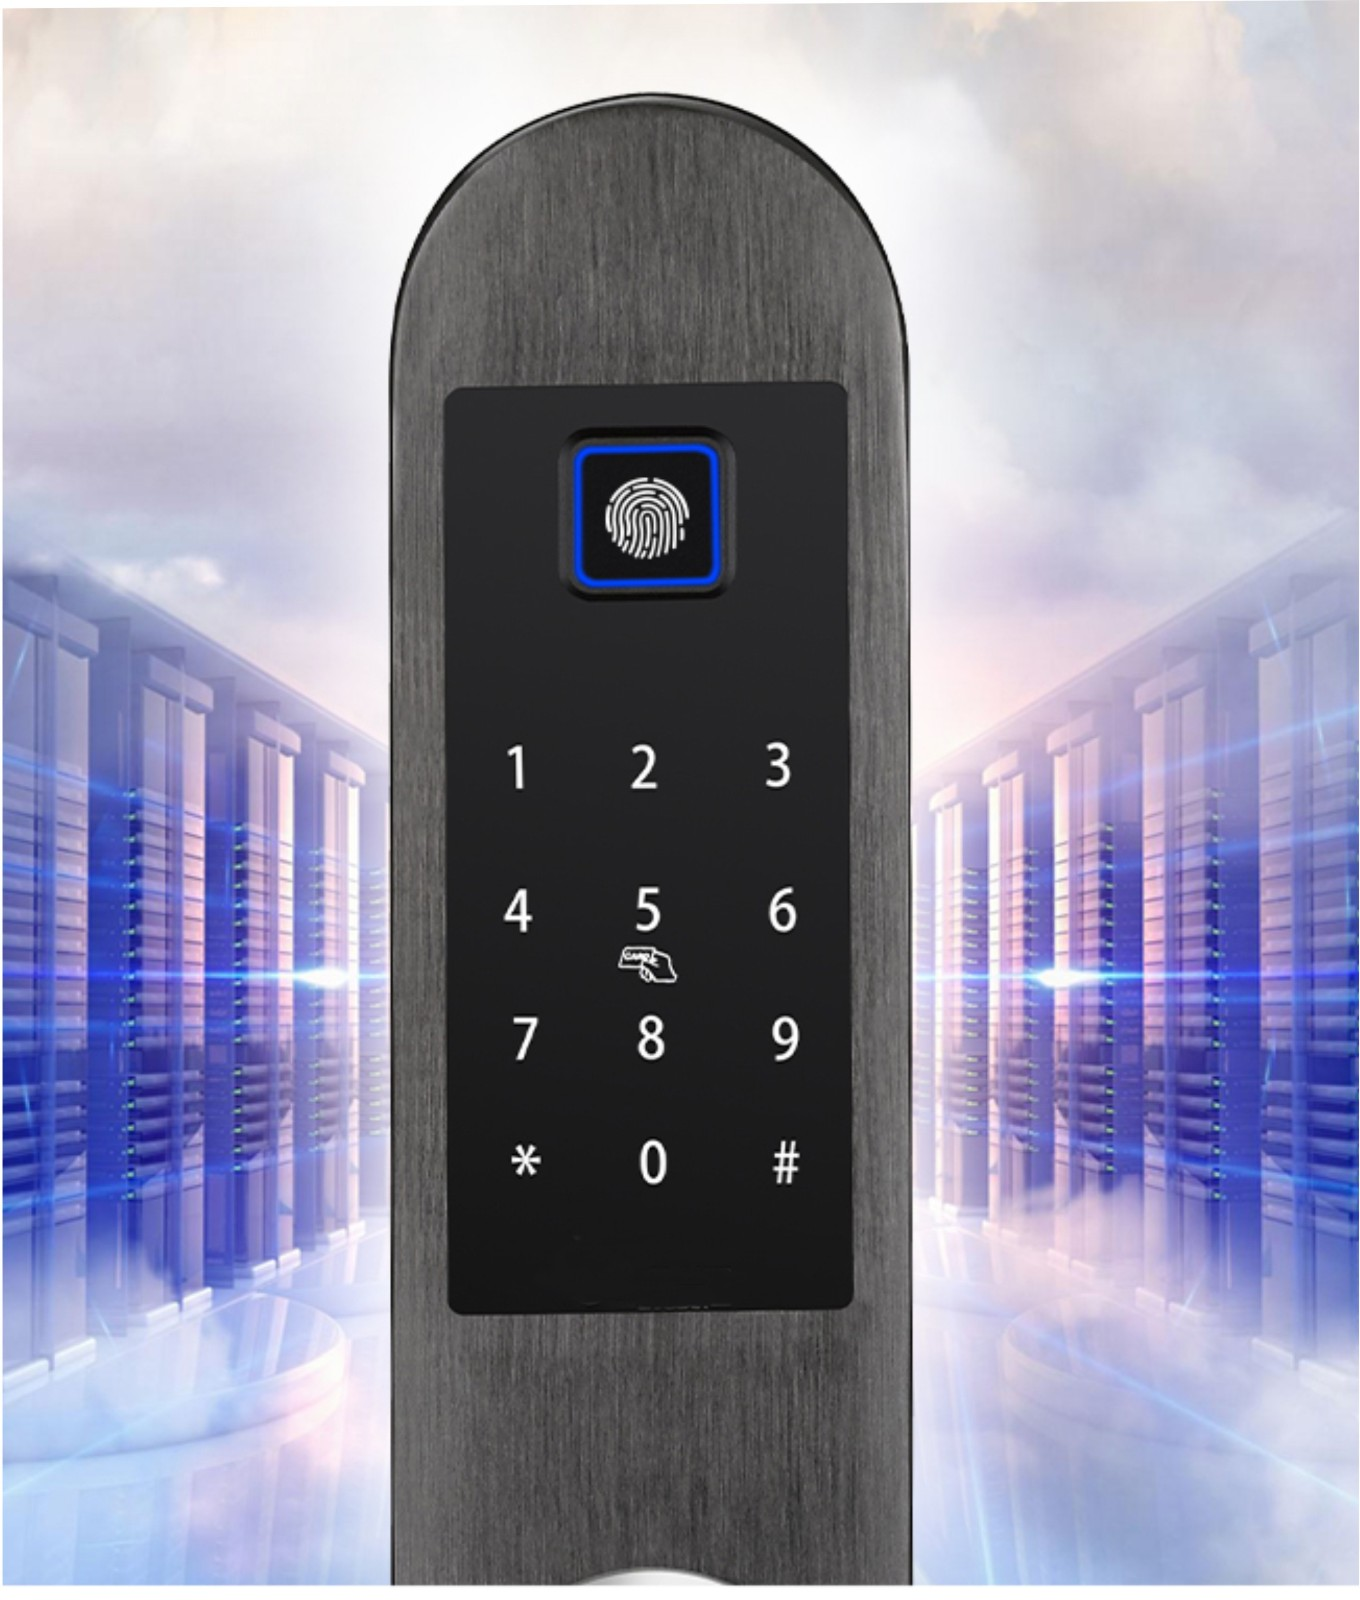 reliable keyless lock good quality for apartment-7